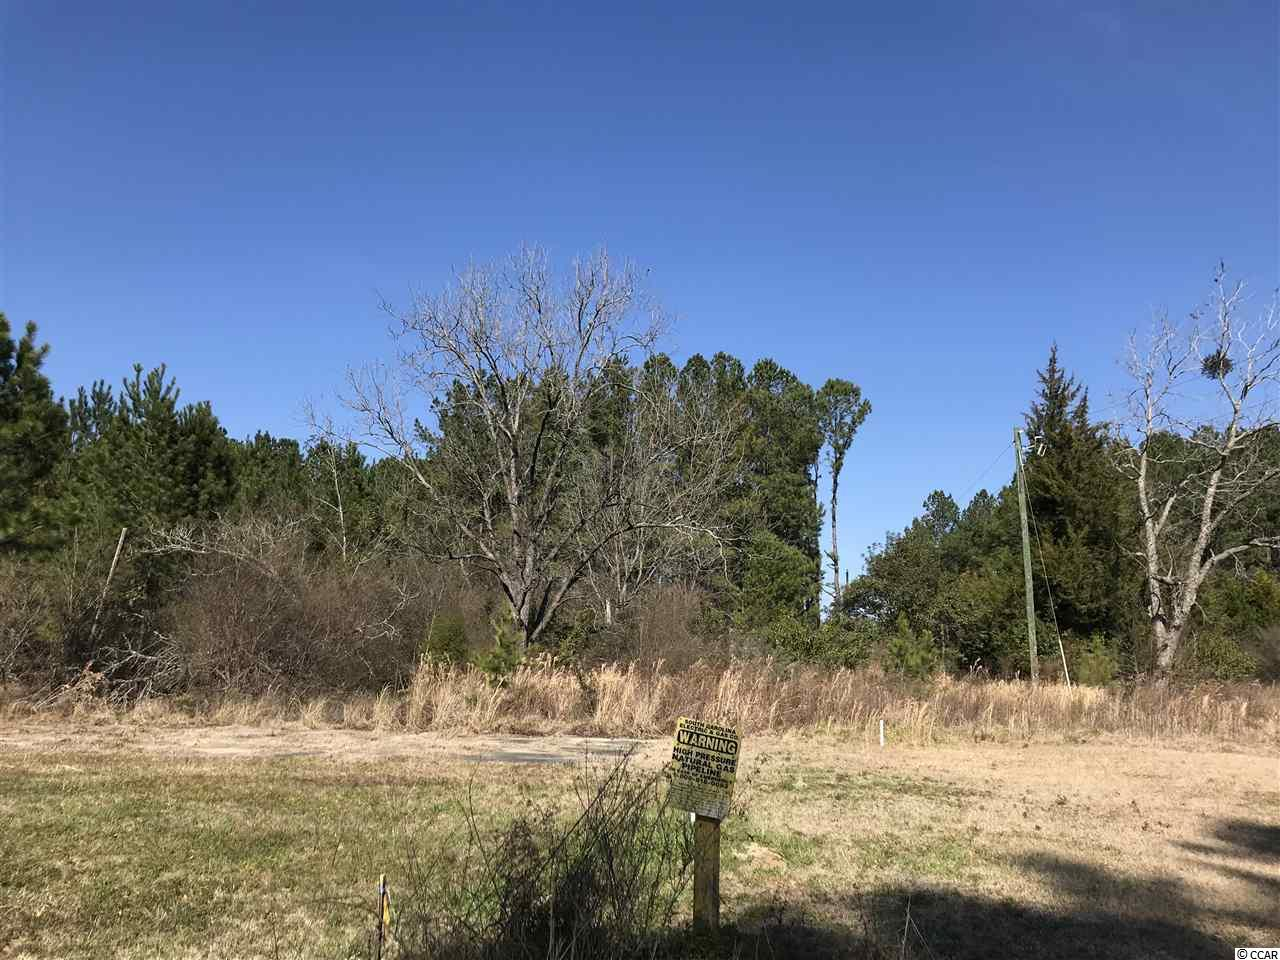 Lot located in a CFA zoning which has intended uses for Commercial, Forestry, residential, cultural, religious, social, agricultural and recreational uses. Please call your agent for a list of acceptable uses.